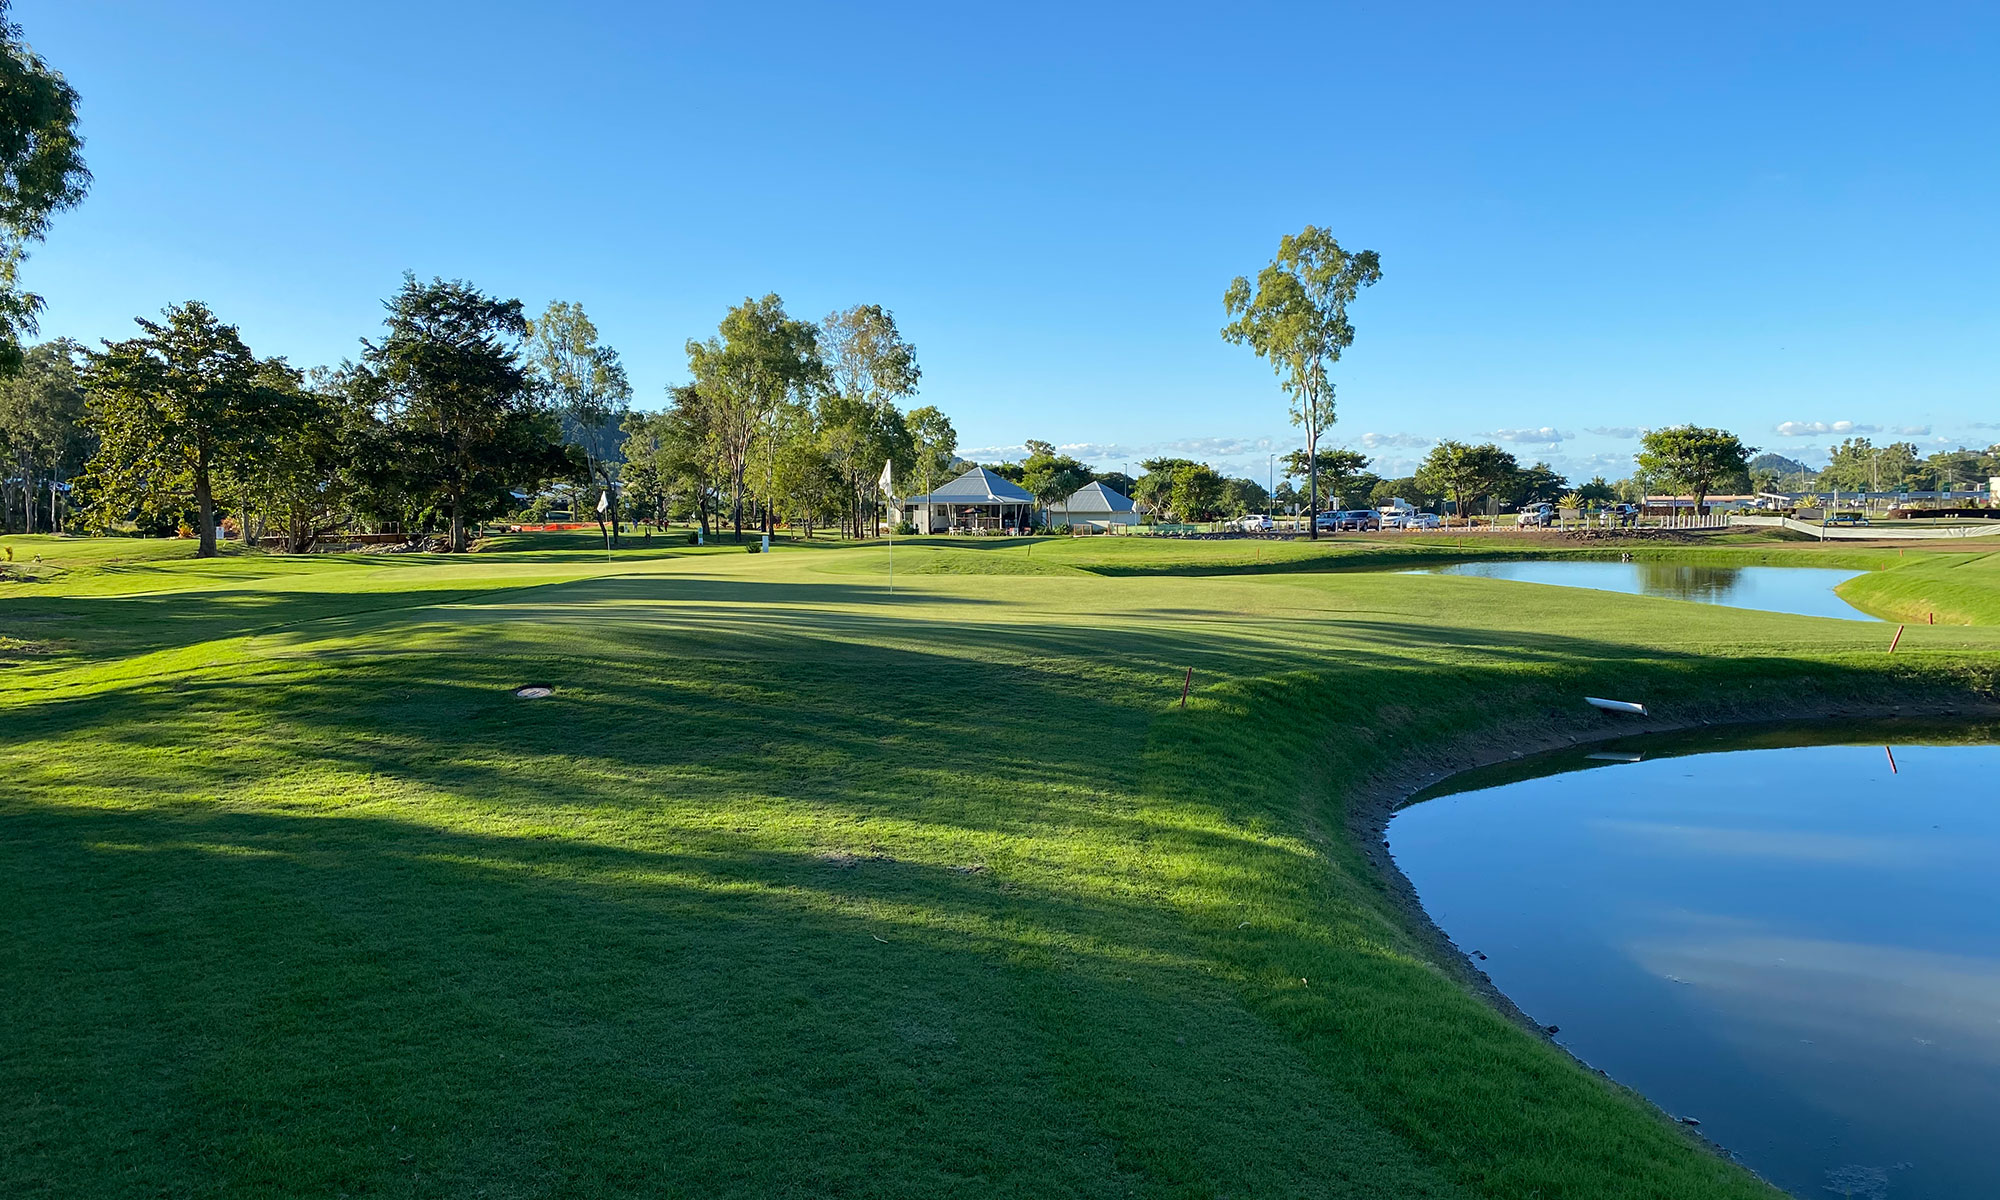 The Course at Whitsunday Green